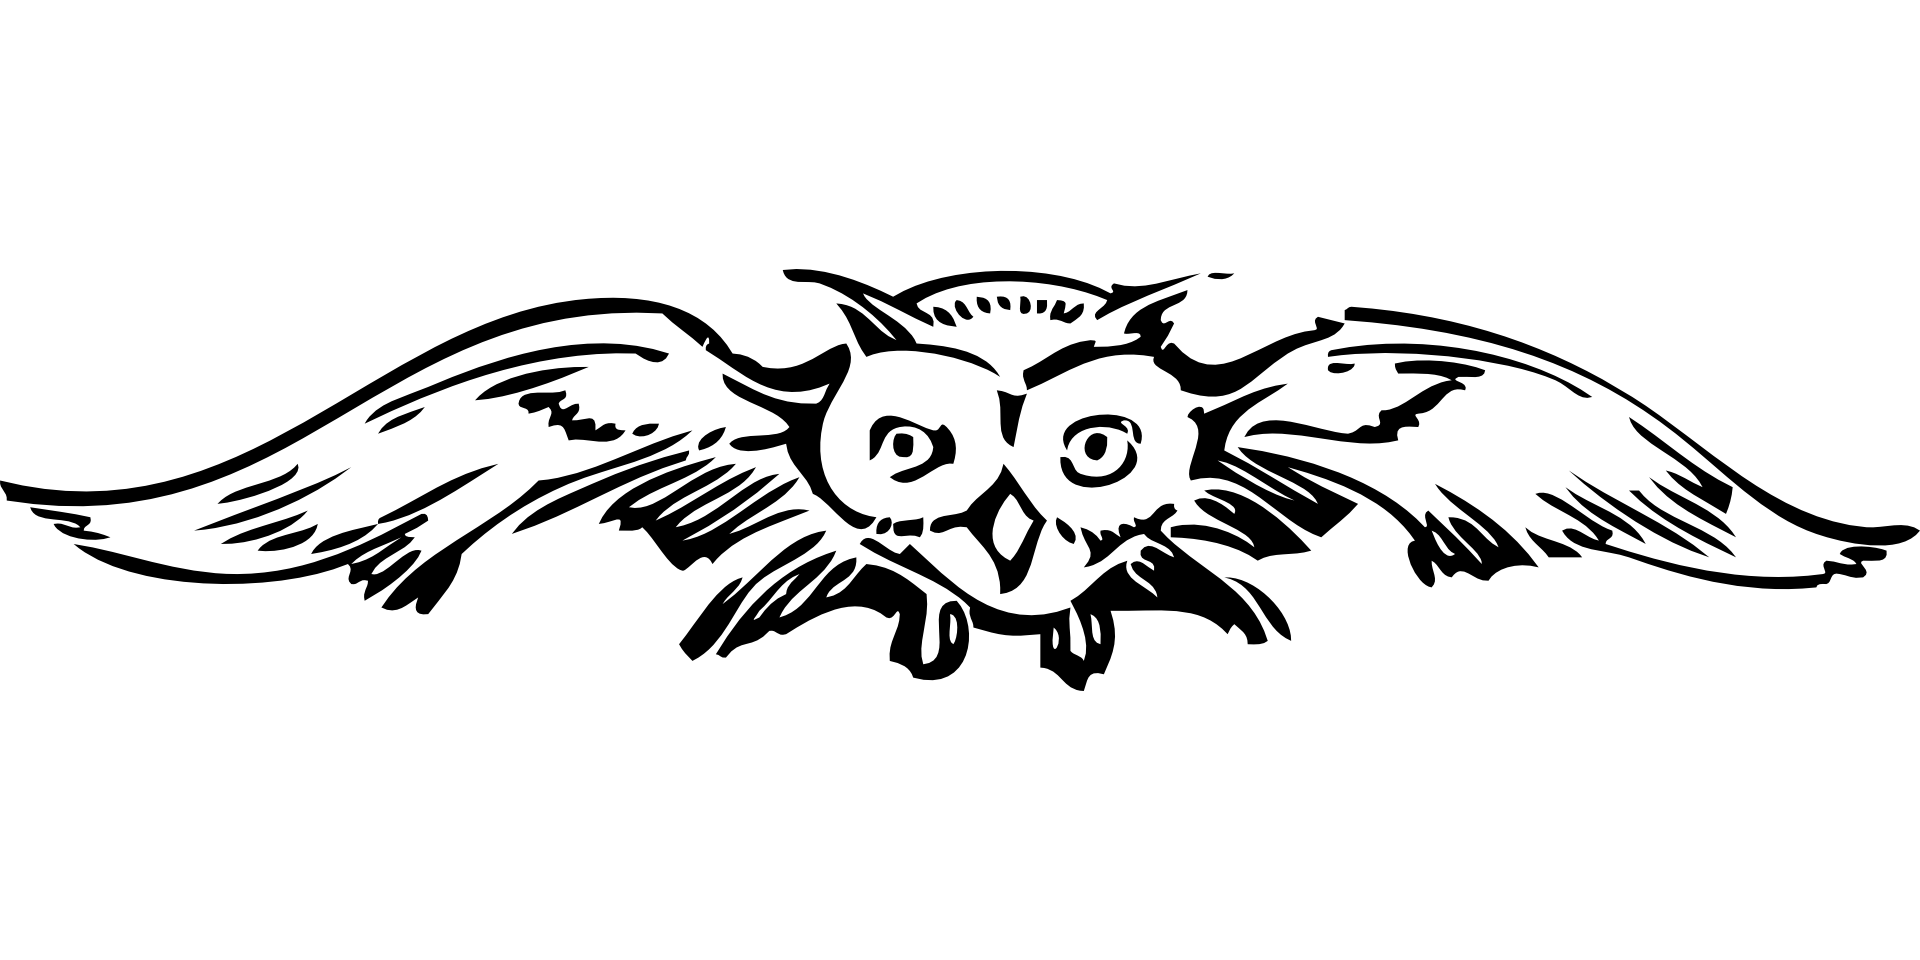 image shows an illustration of an owl flying